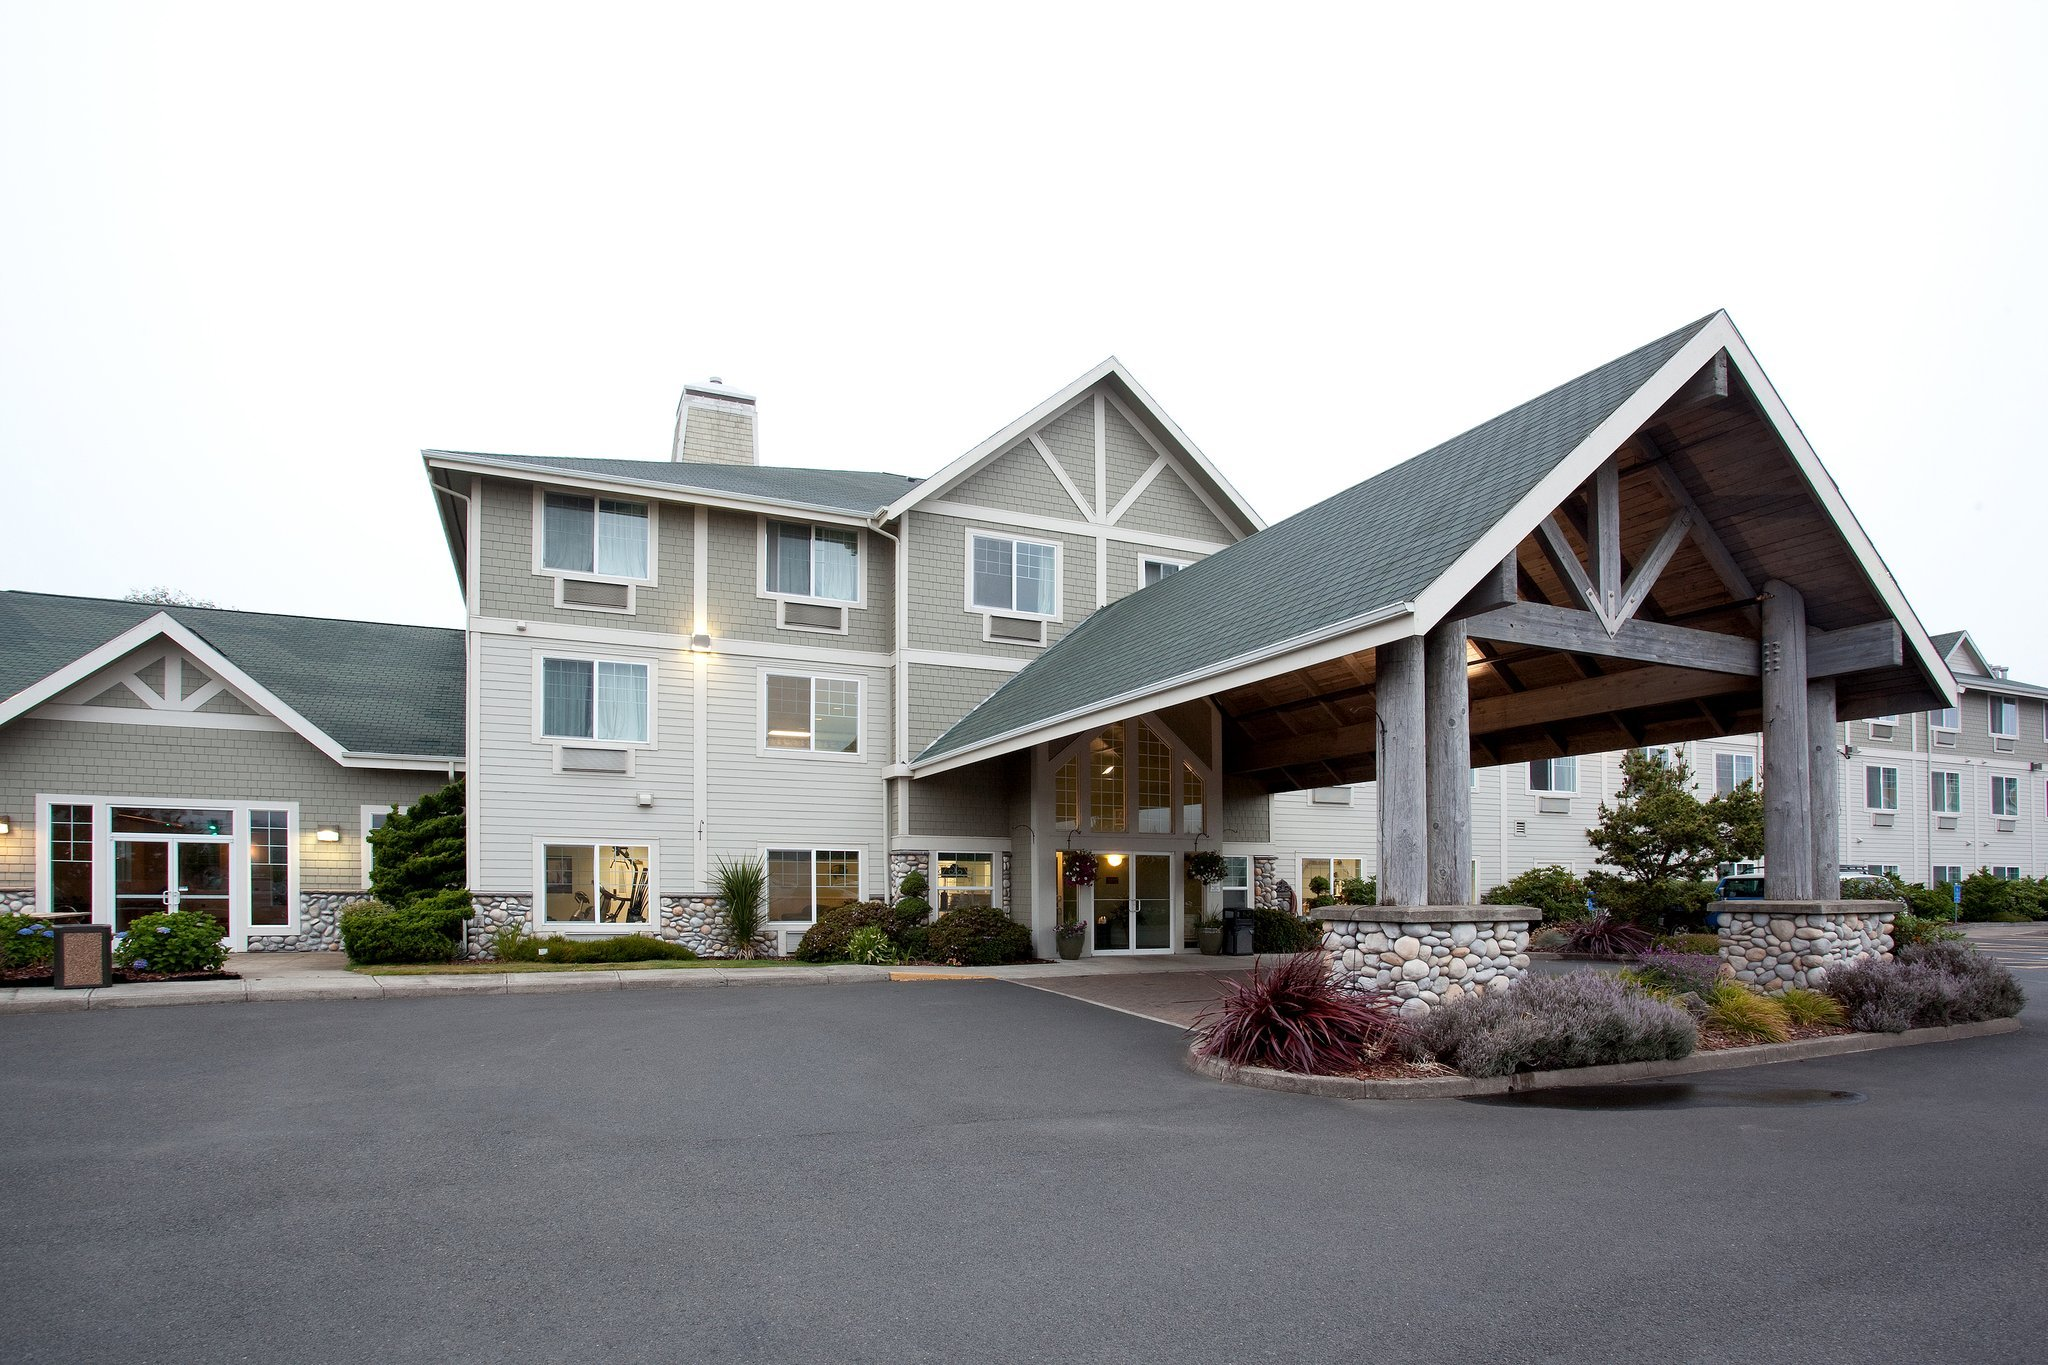 La Quinta Inn Suites Newport Oregon Updated 2017